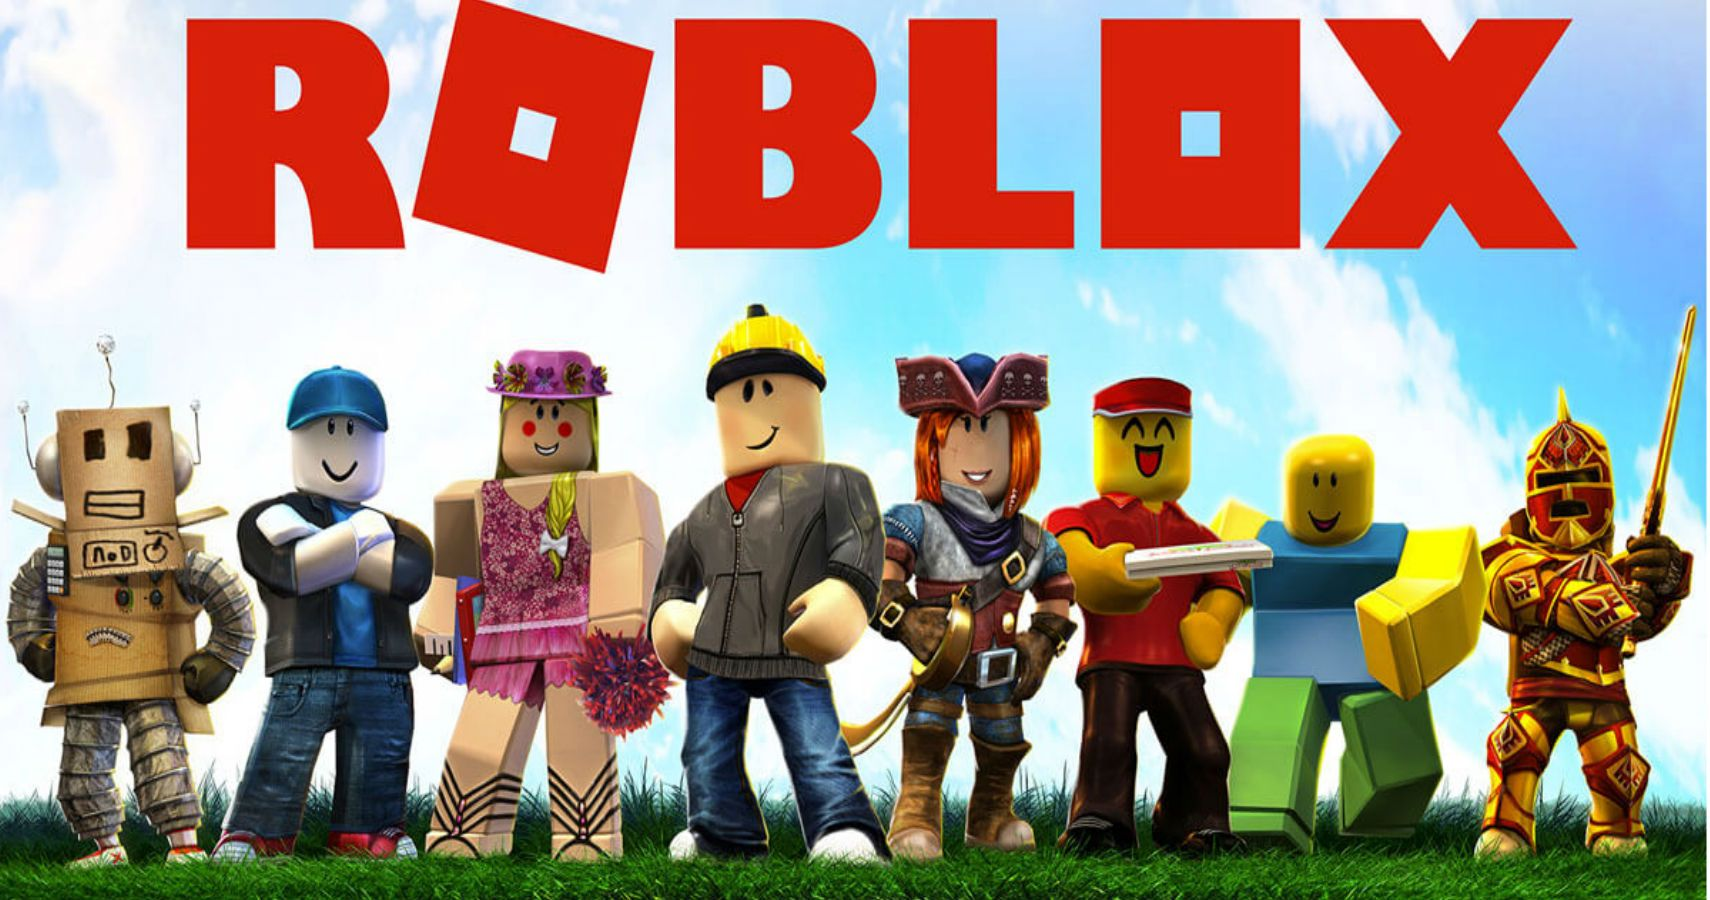 Roblox Mobile Has Stacked Up Over 1 Billion Thegamer